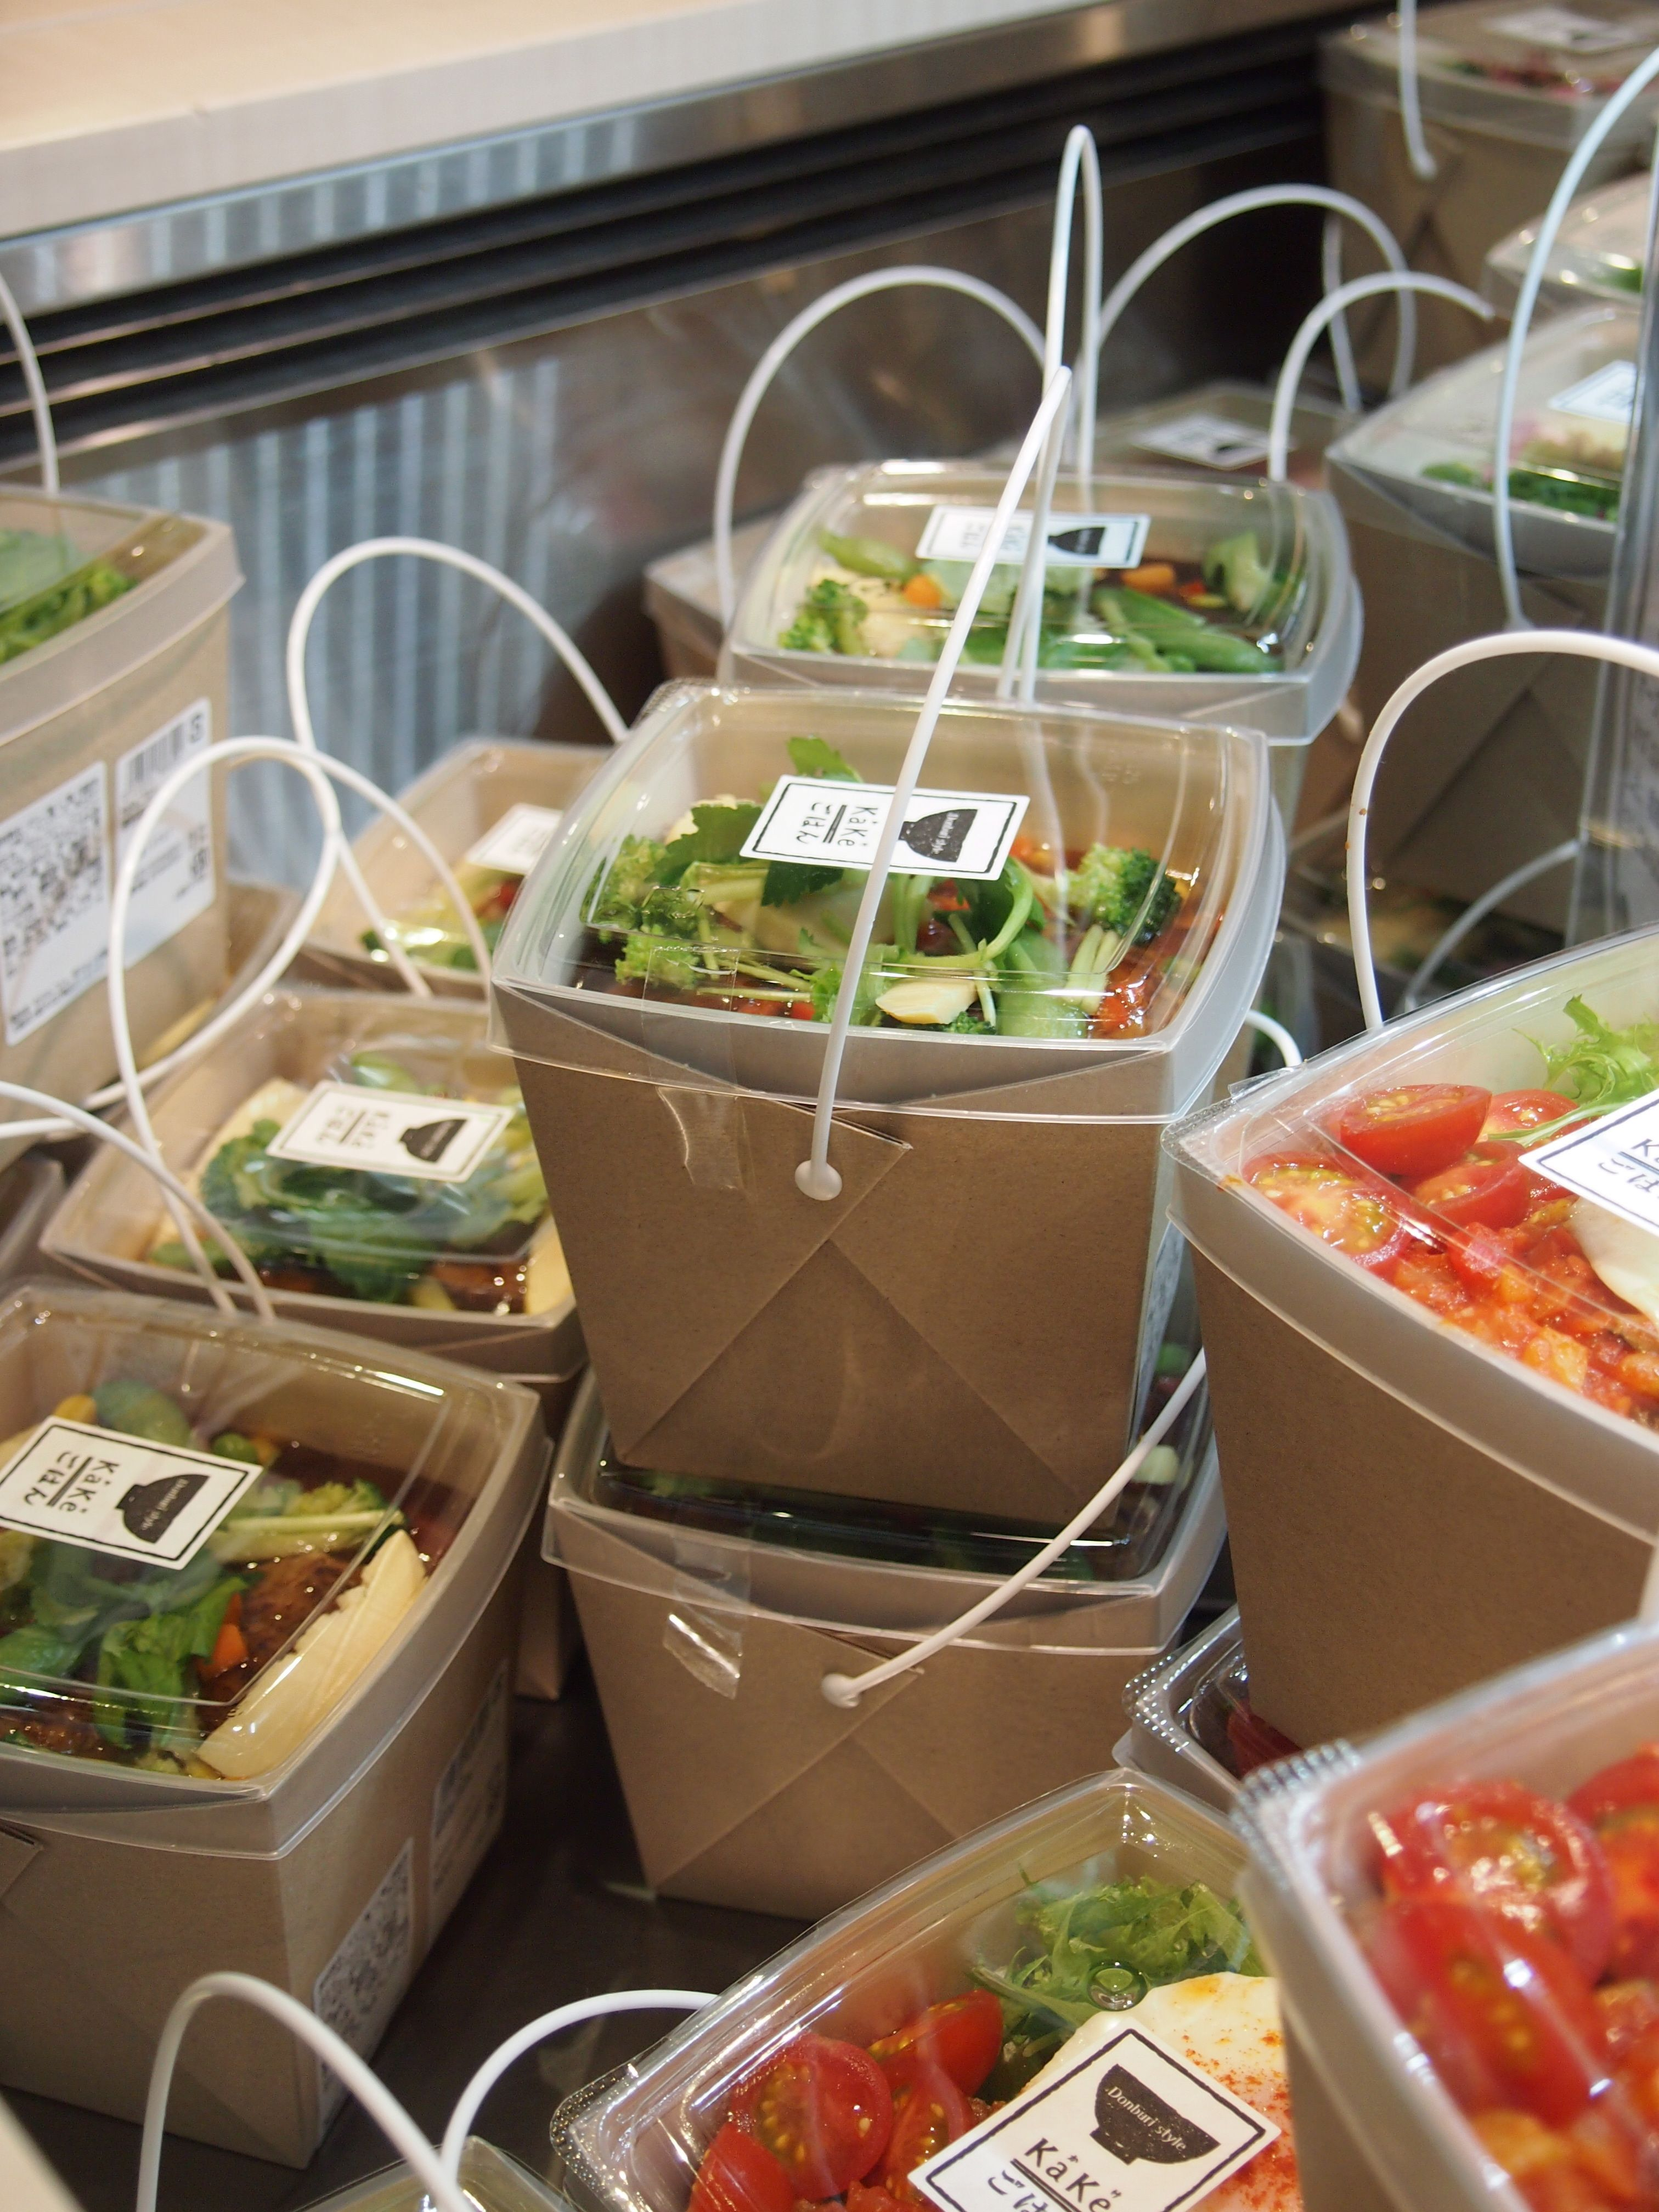 Japanese supermarket takeaway salad containers, very